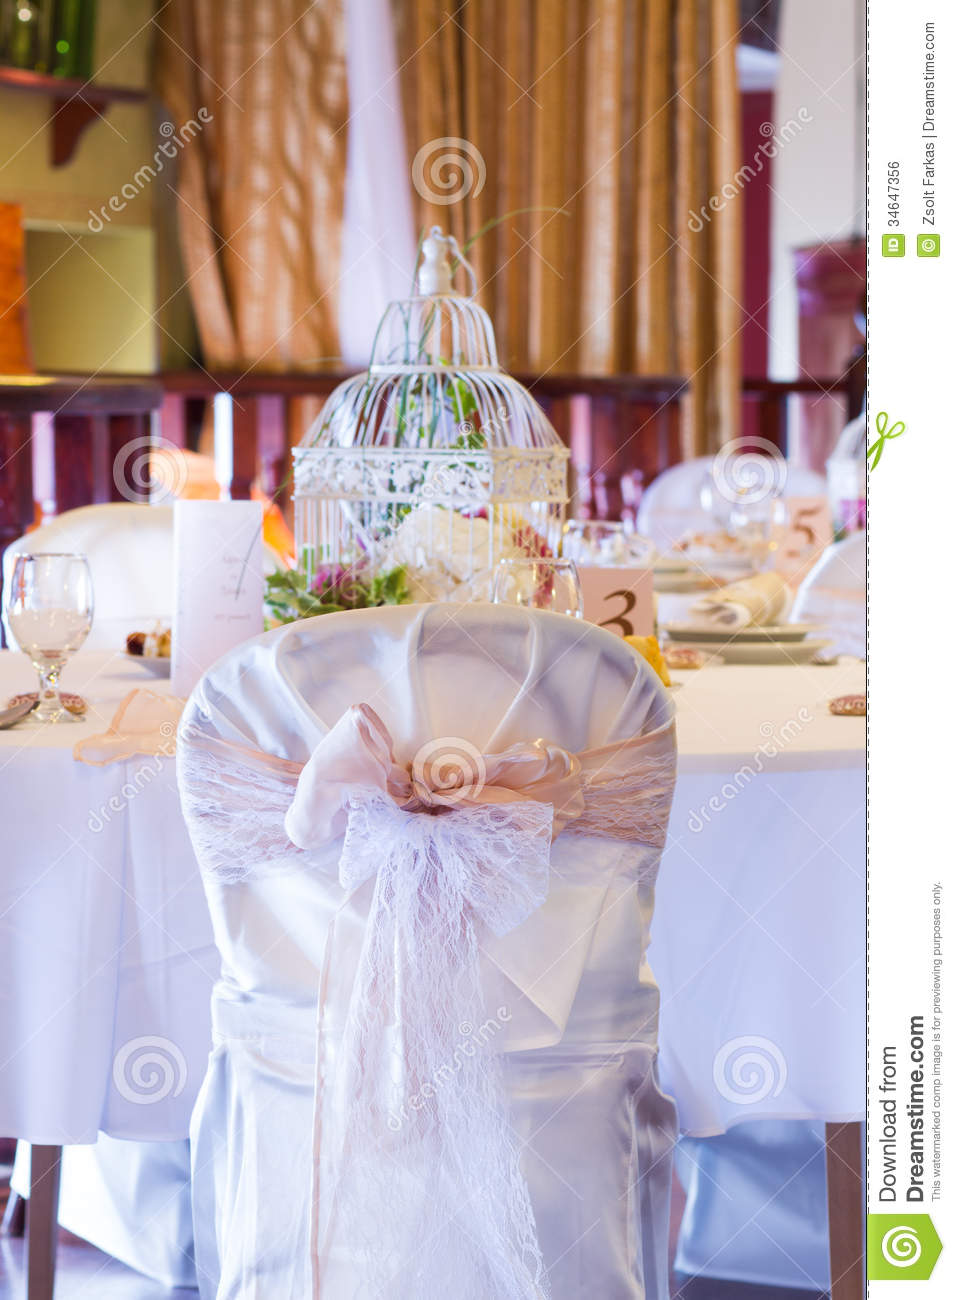 Wedding Table And Chairs With Vintage Decoration Royalty Free Stock